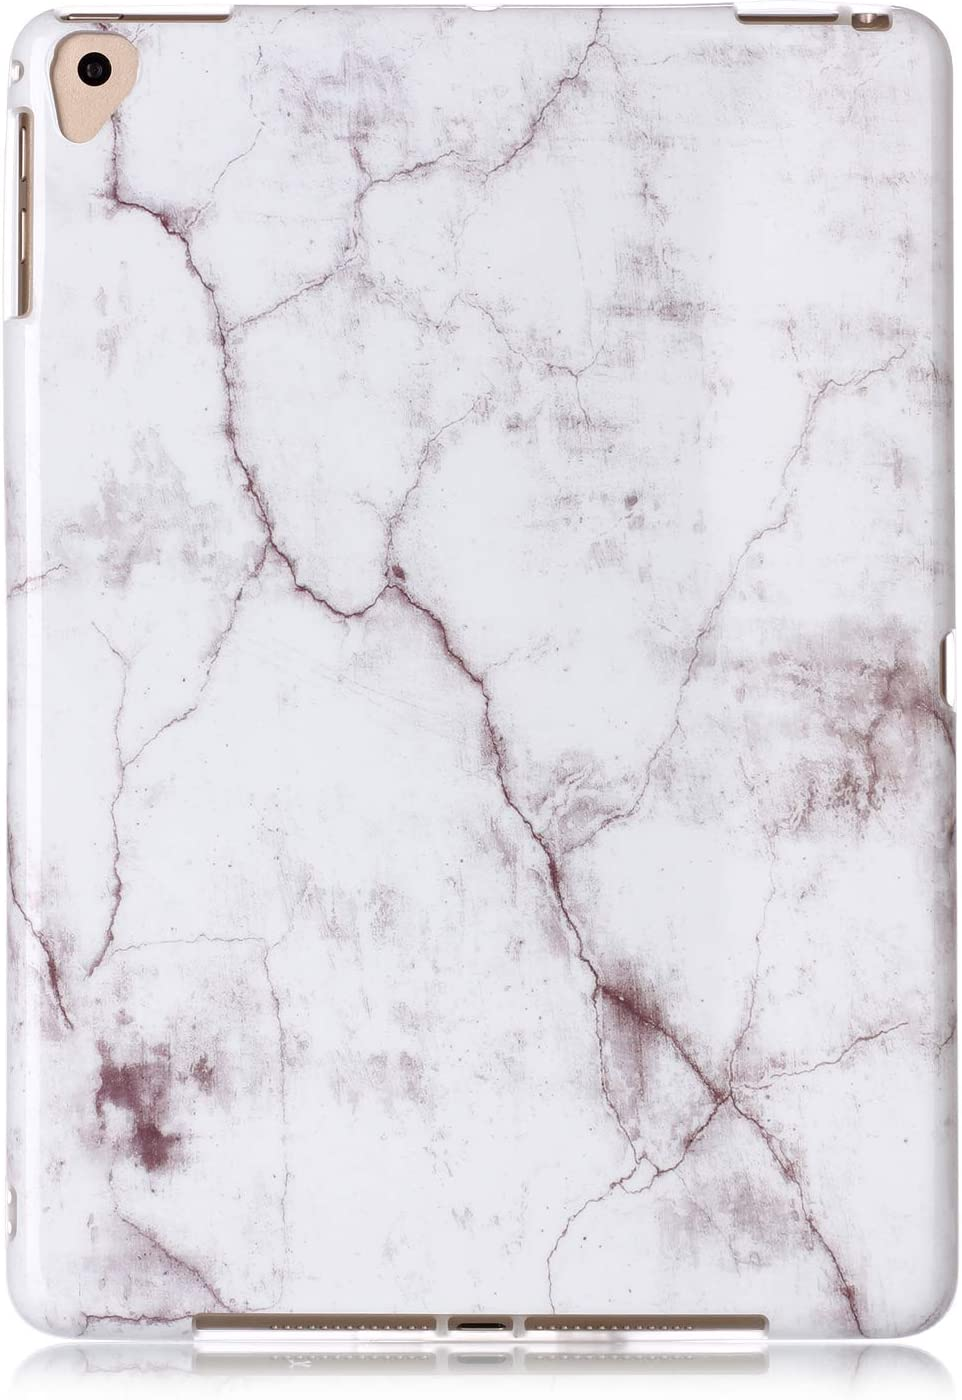 Dteck Shockproof Back Cover Case for 9.7 Inch Apple iPad 2018 (iPad 6th Generation) /iPad 2017 (iPad 5th Generation) /iPad Air 2 2014 /iPad Air 2013 Tablet - Soft Silicone Pretty Protect Case-Marble G